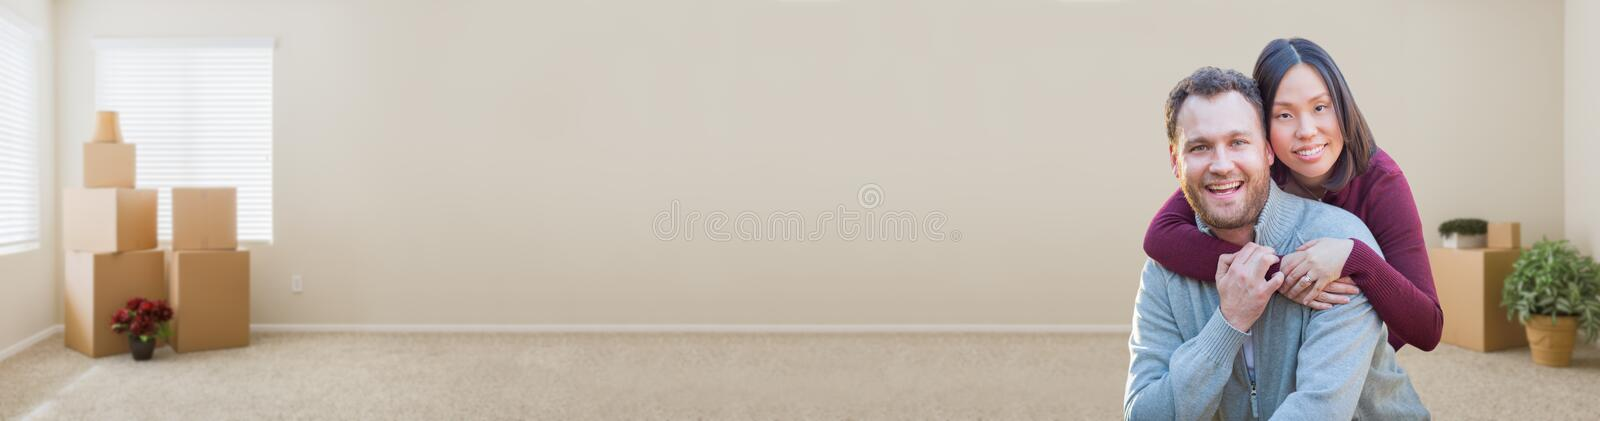 Mixed Race Caucasian and Chinese Couple Inside Empty Room with Boxes royalty free stock photo